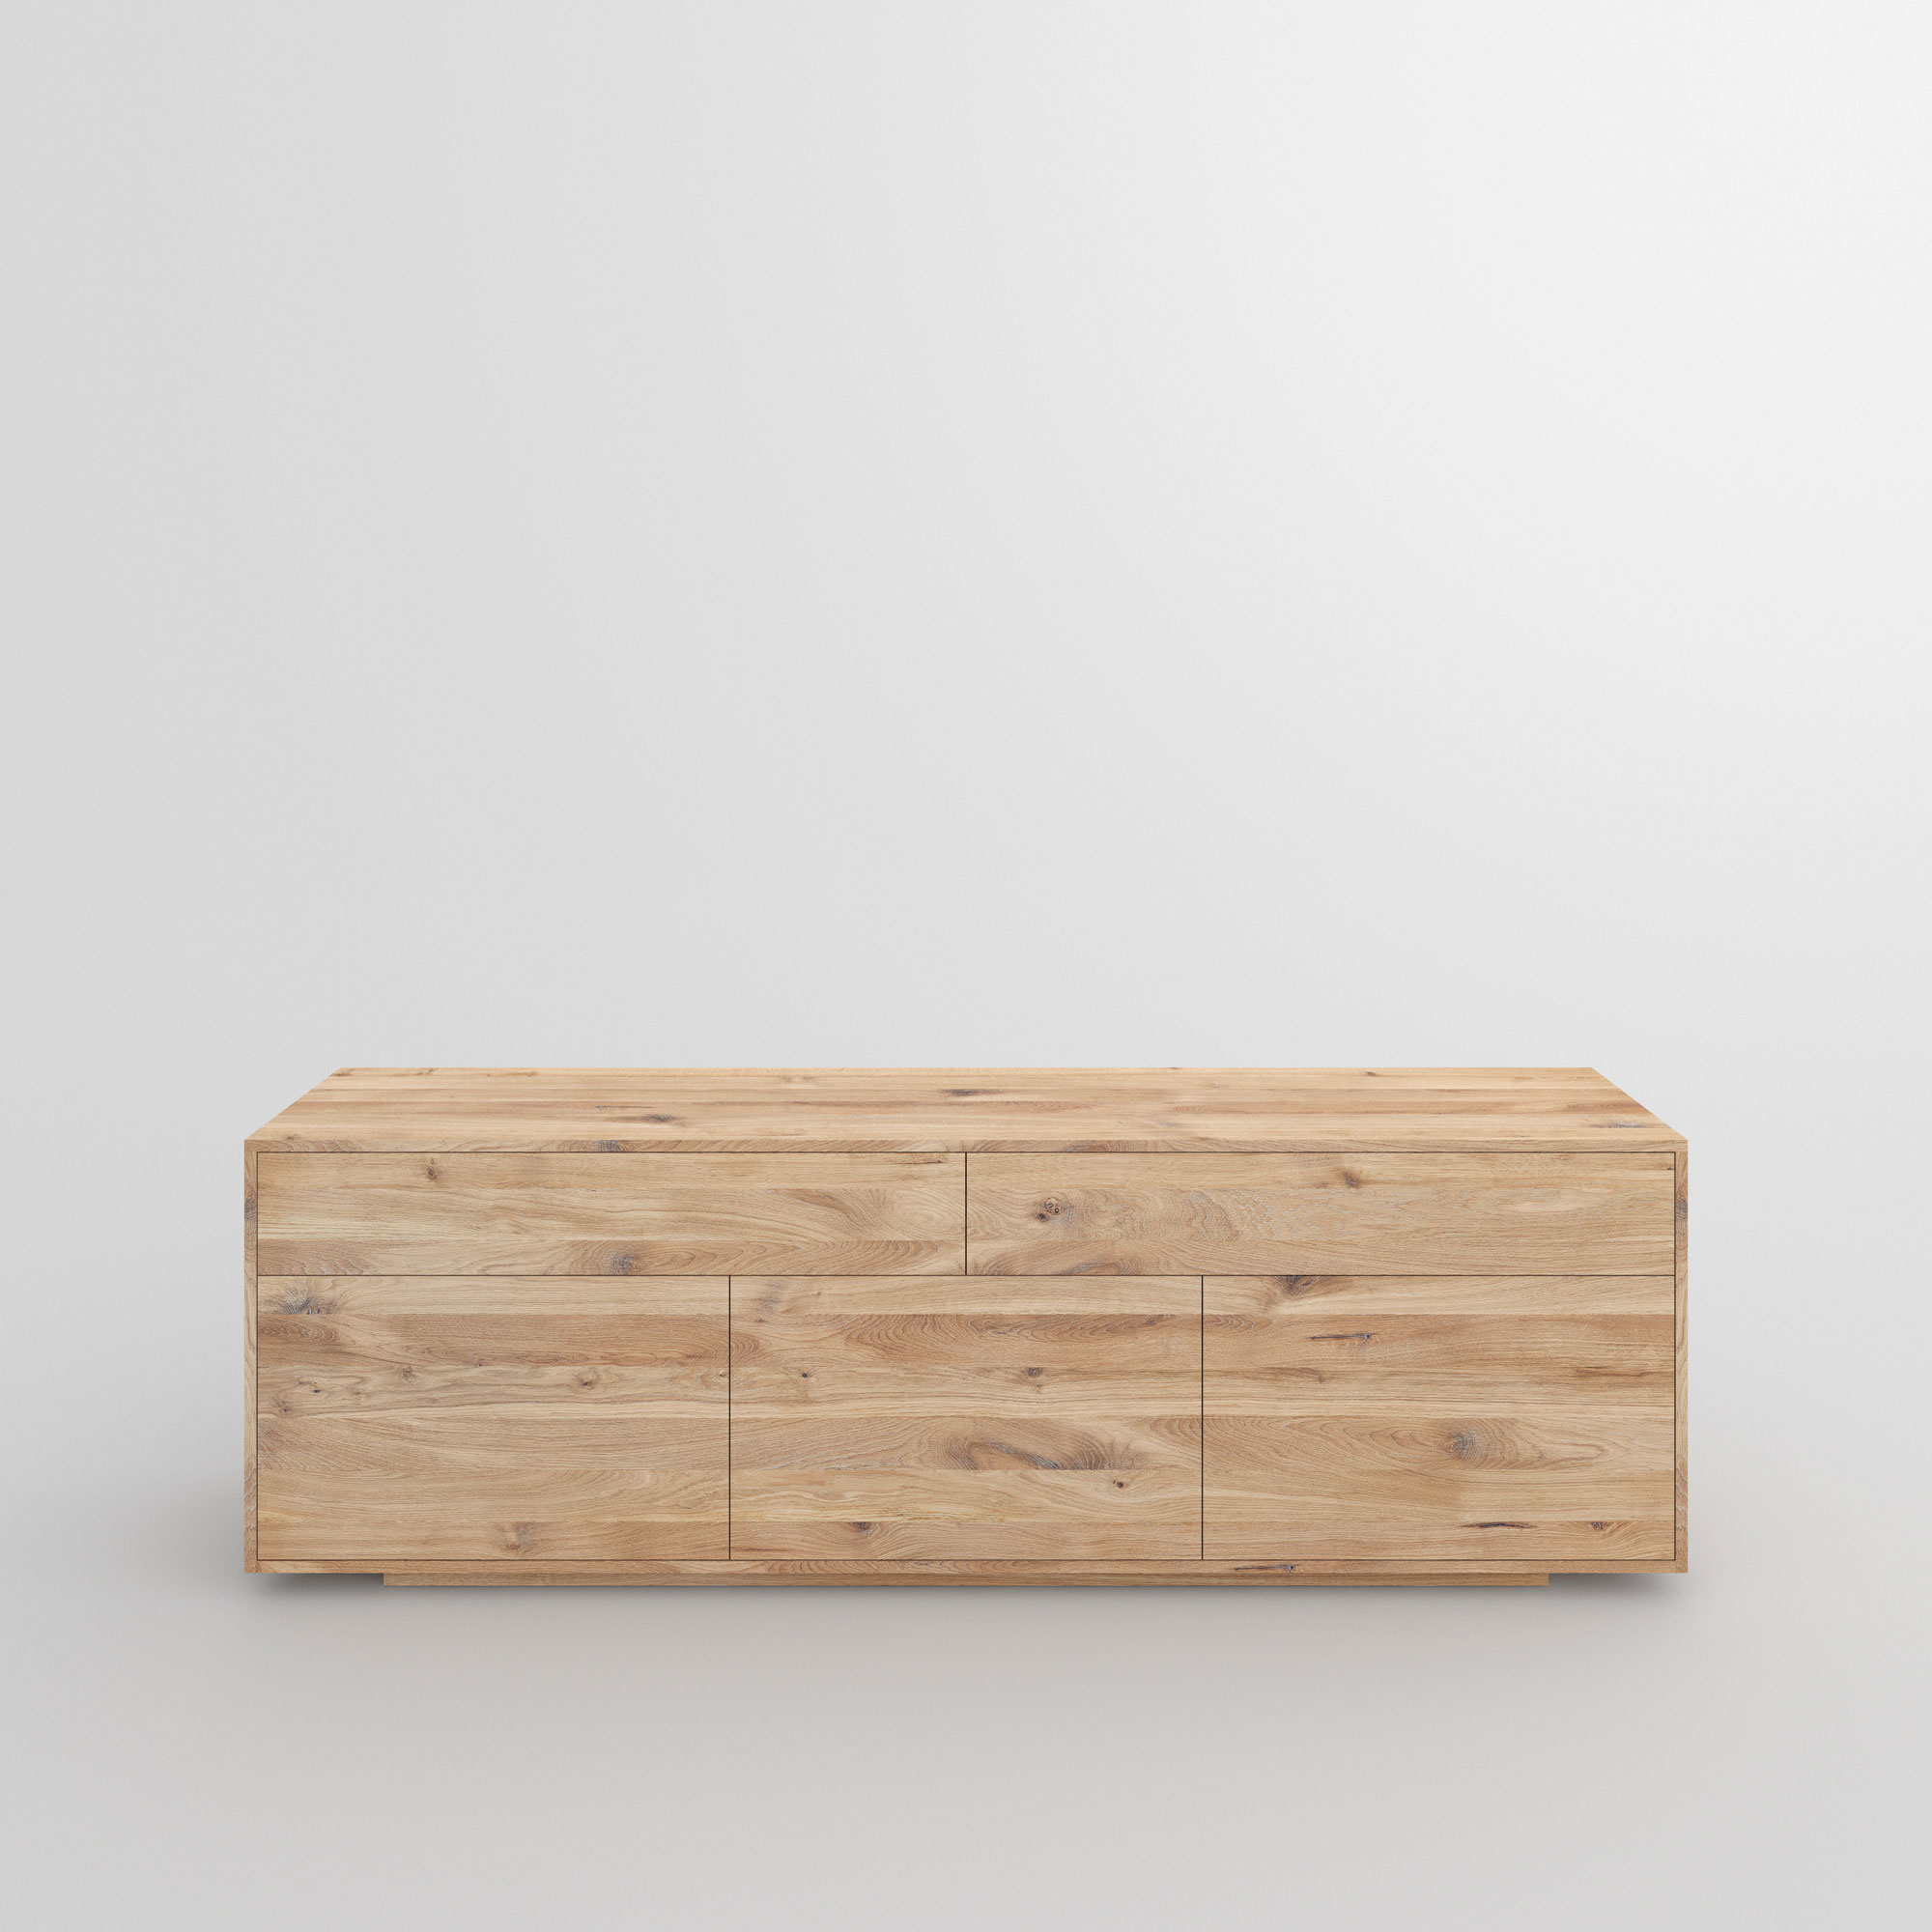 Wooden Designer Sideboard LINEA cam3 custom made in solid wood by vitamin design